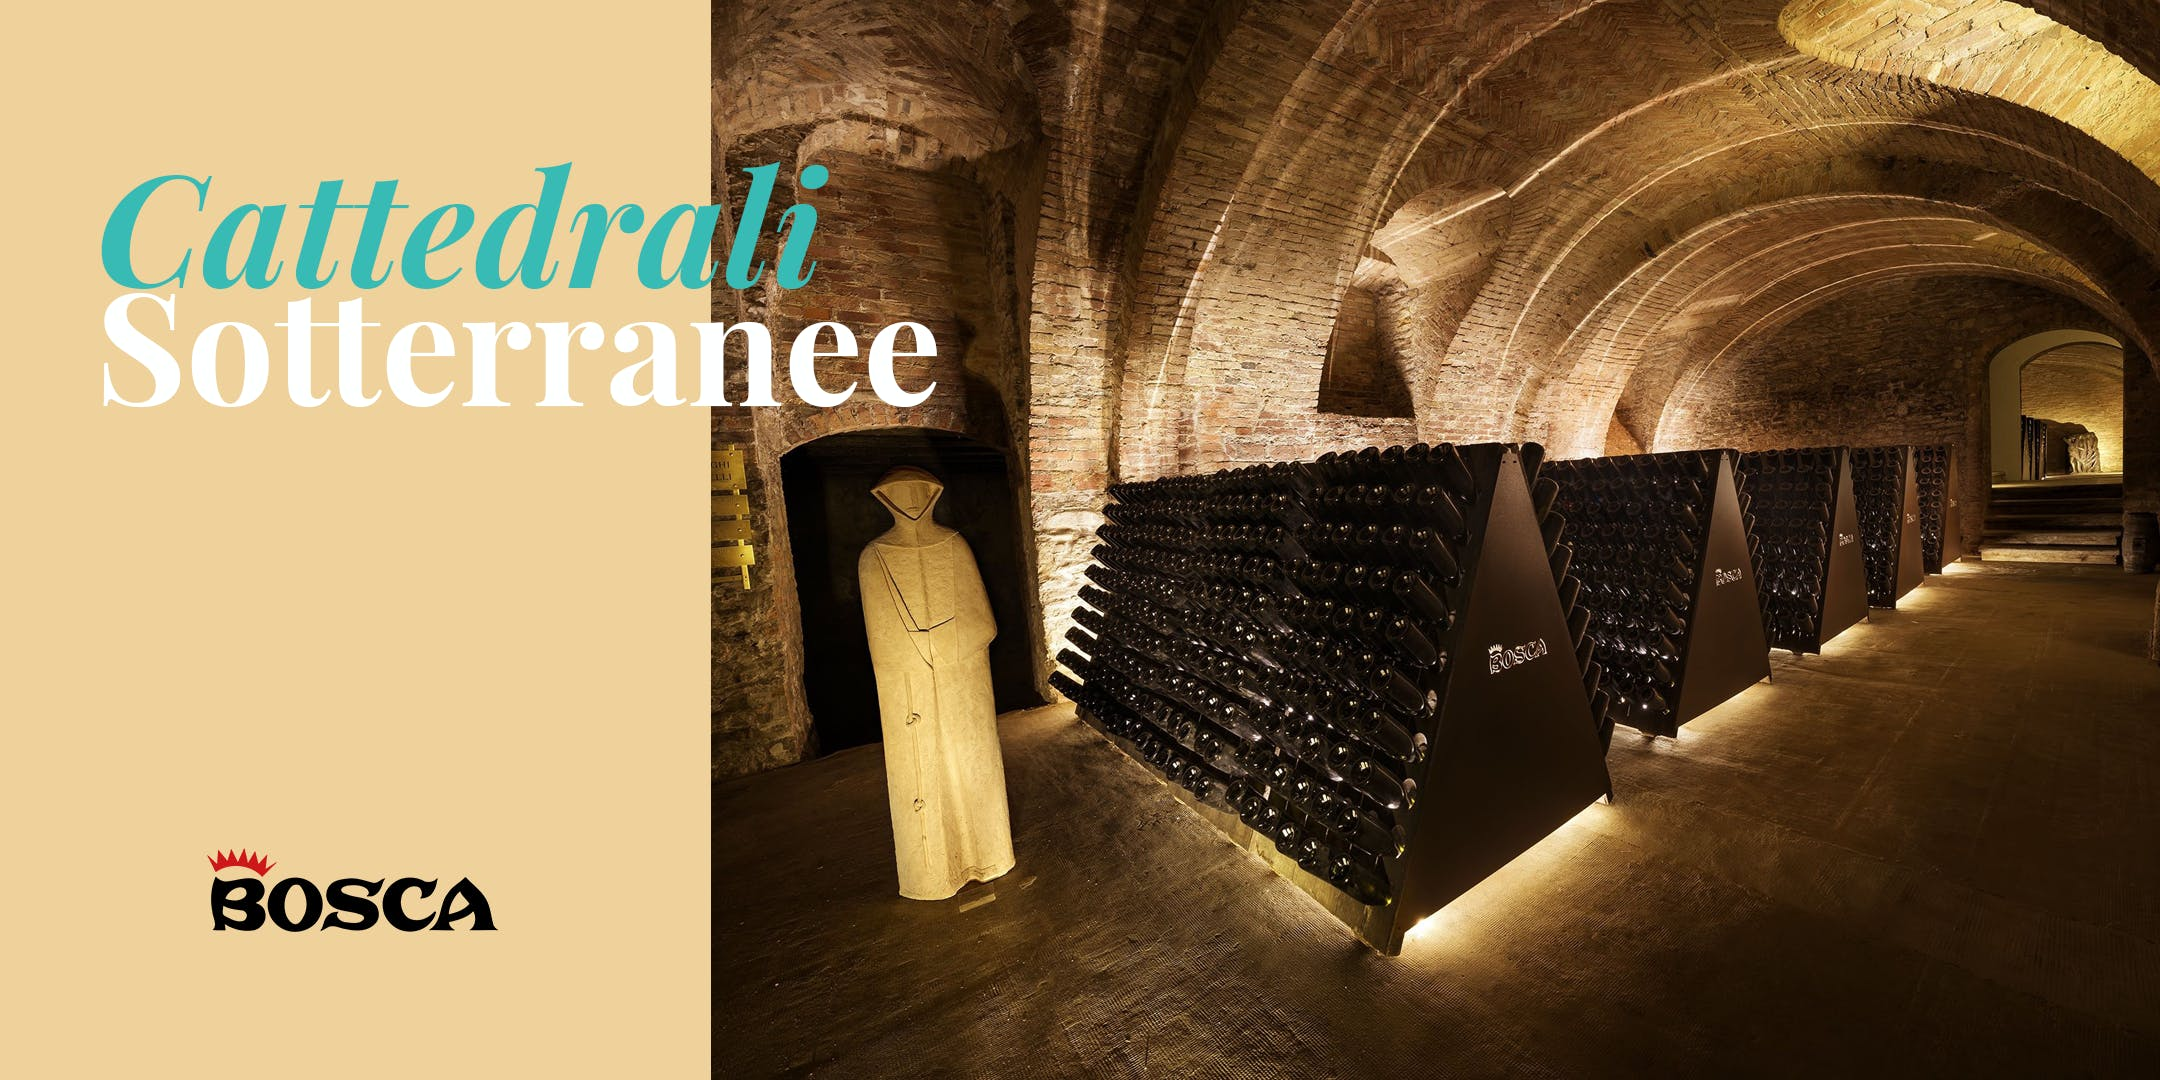 Tour in English - Bosca Underground Cathedral on 21st October at 12:20 pm